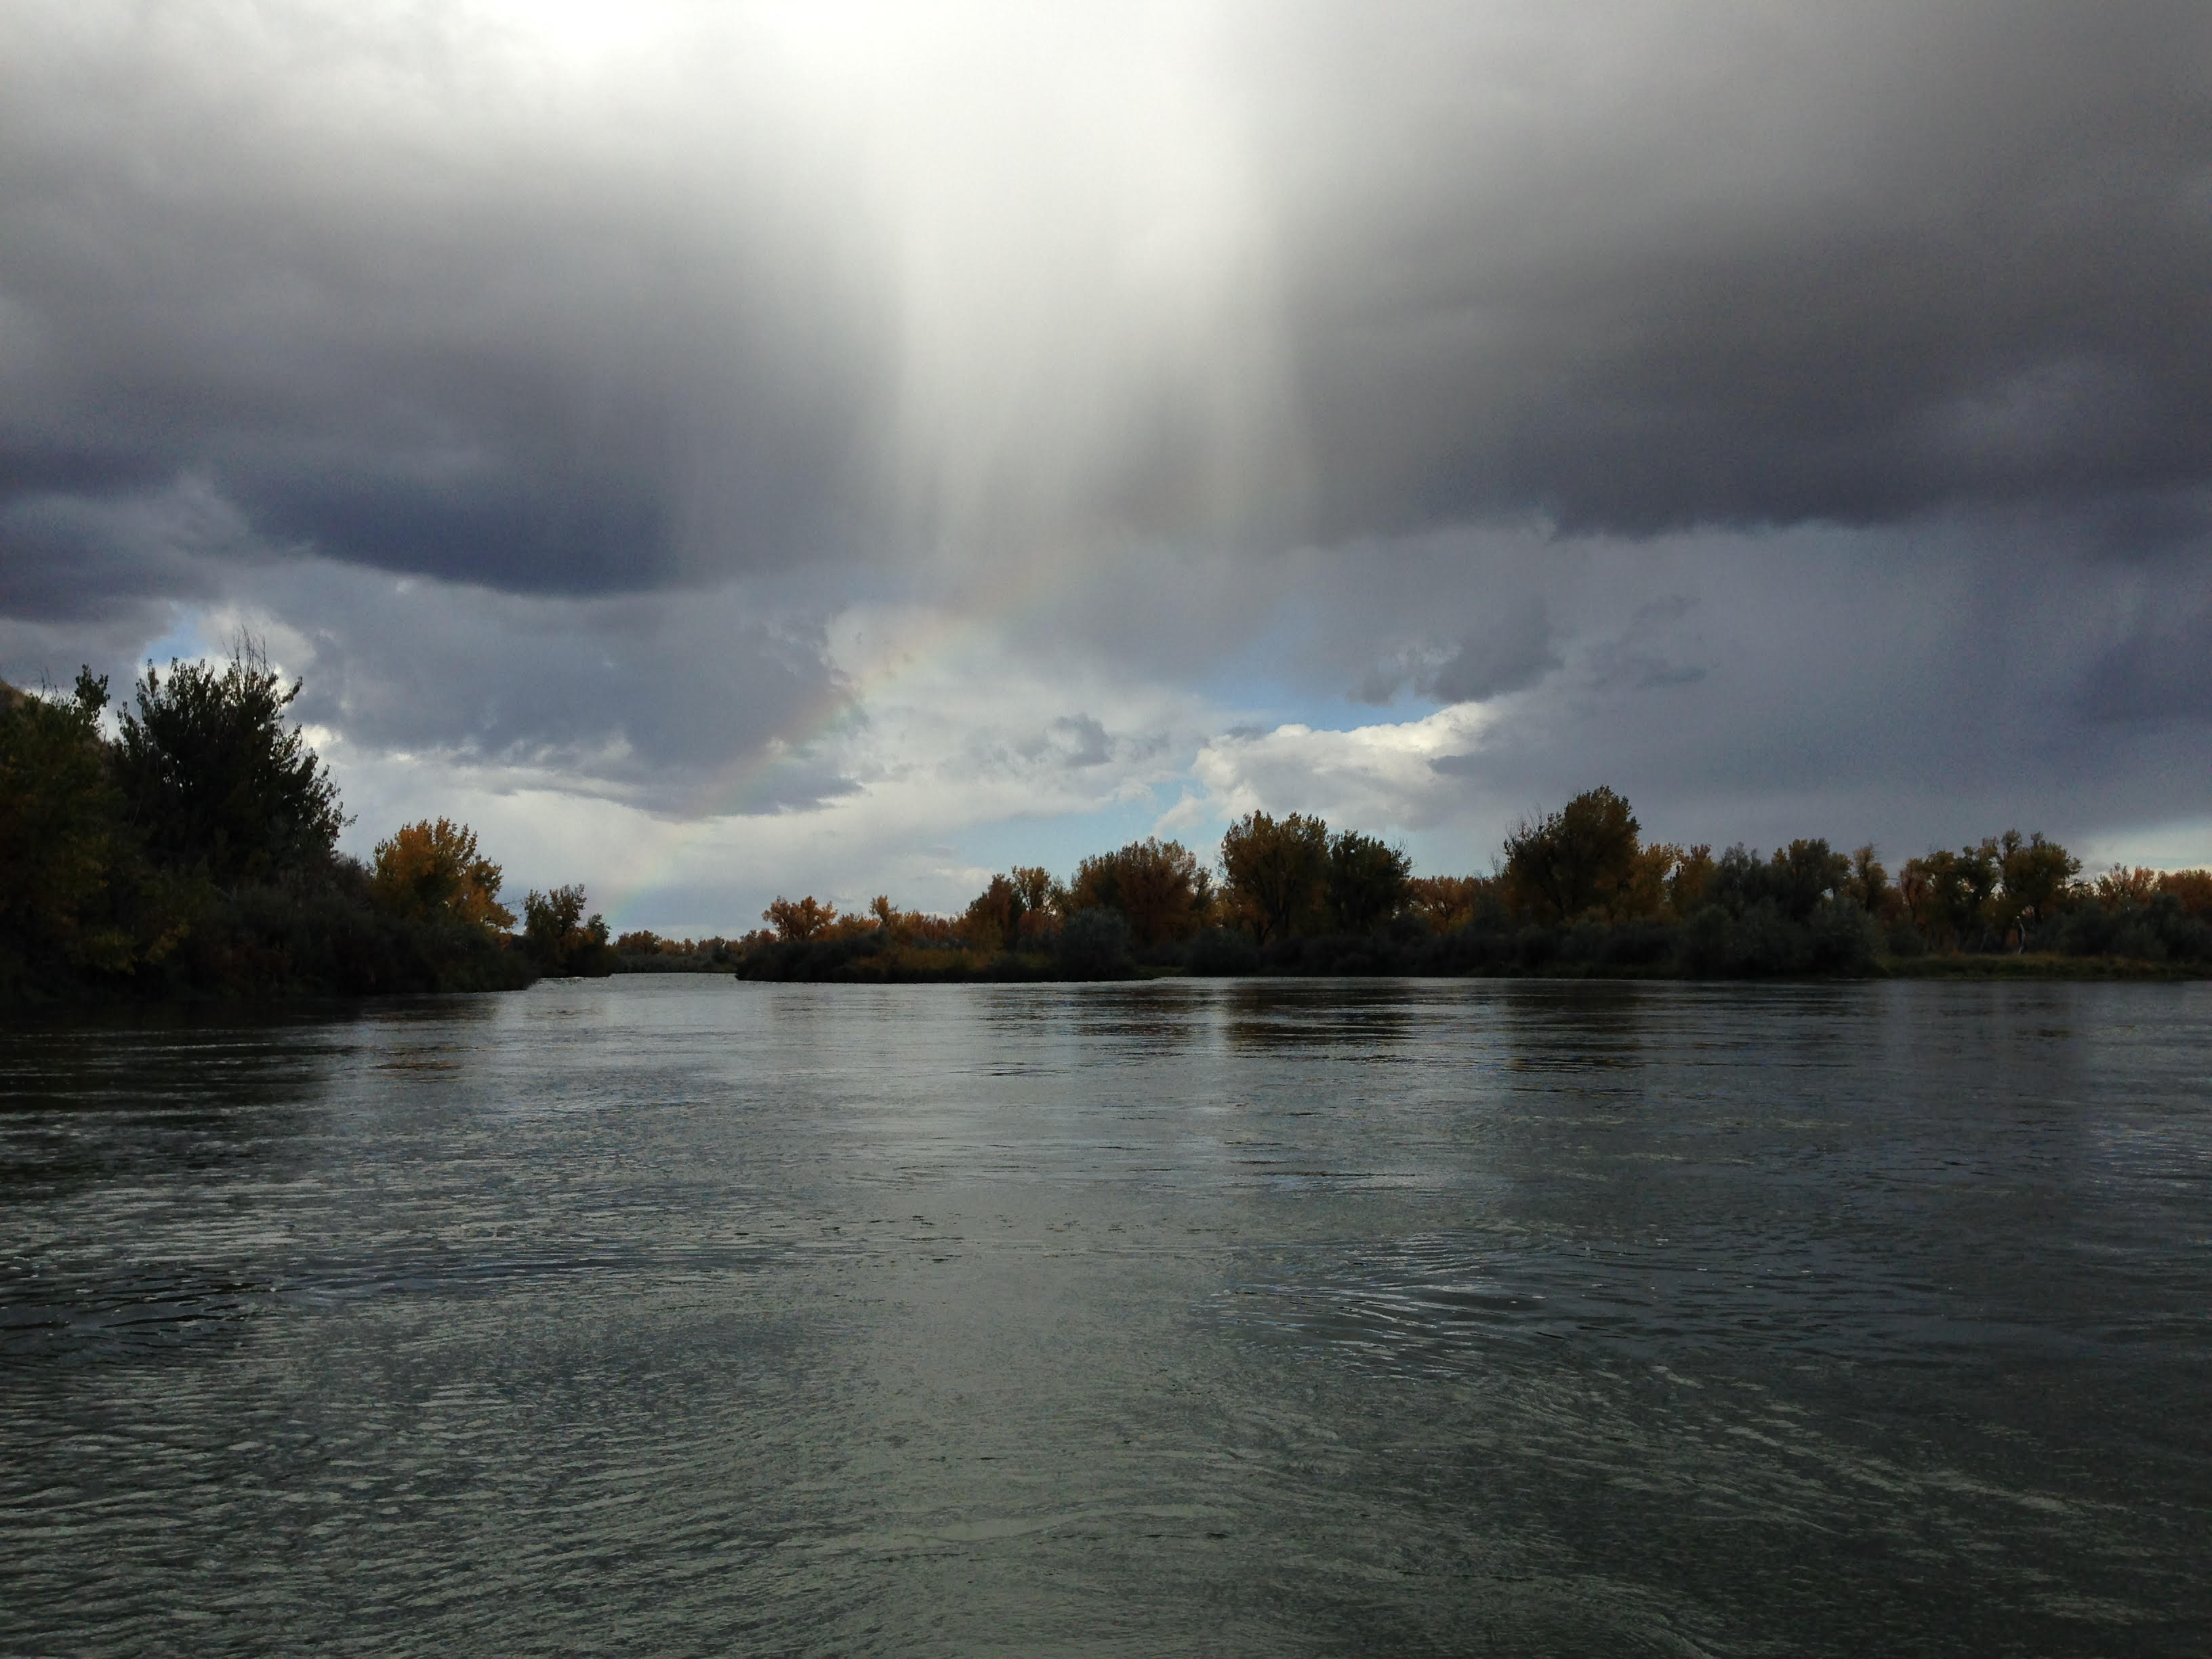 Bighorn River - Summer time - Afternoon Rain